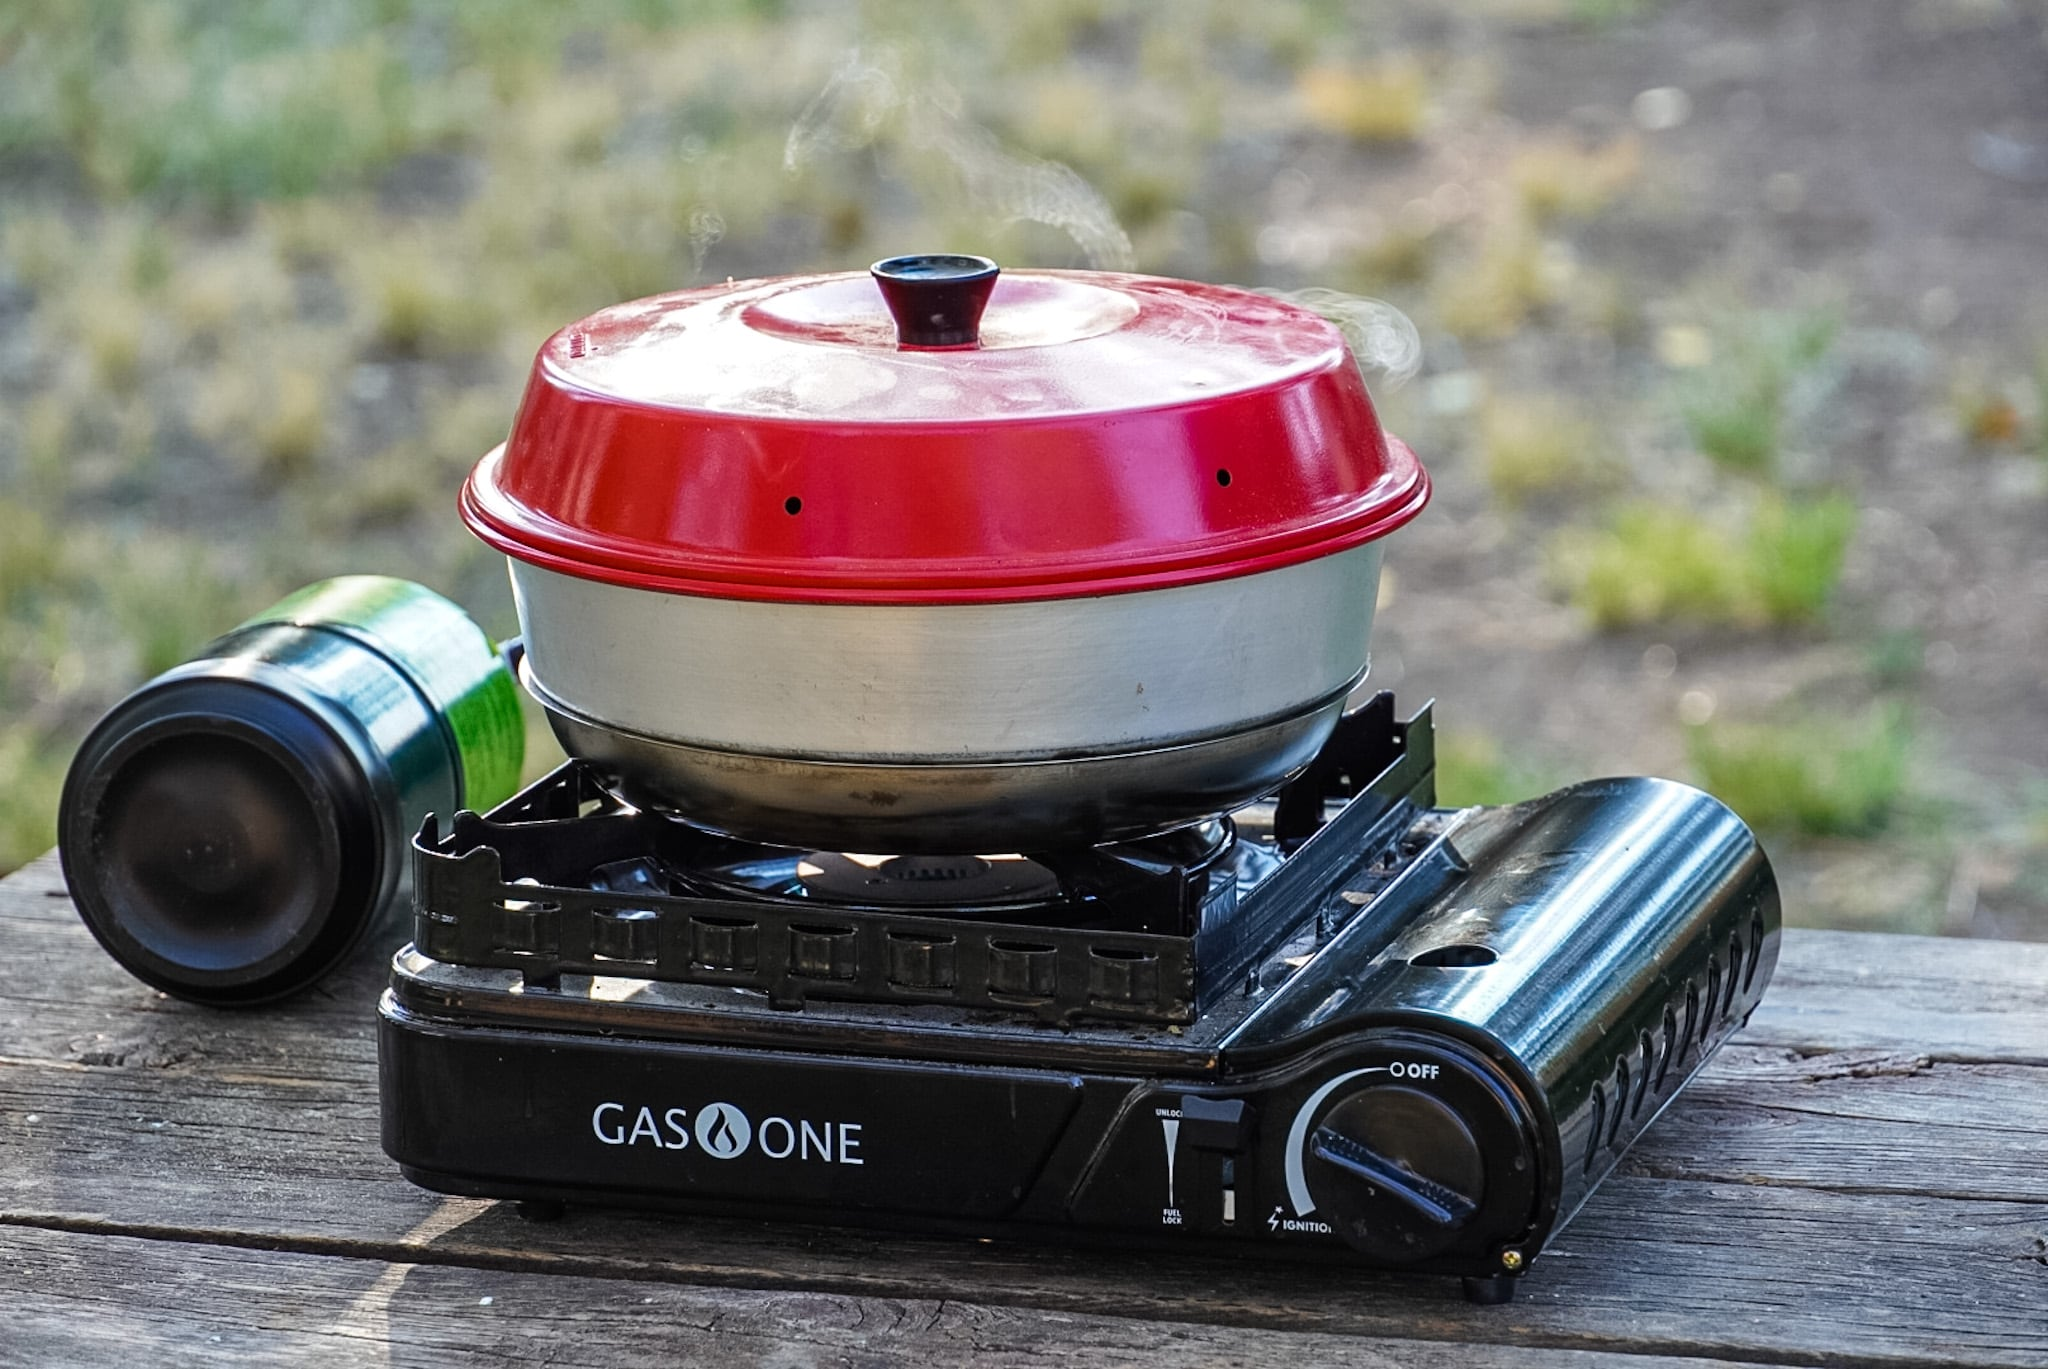 An omnia oven on a single burner camping stove